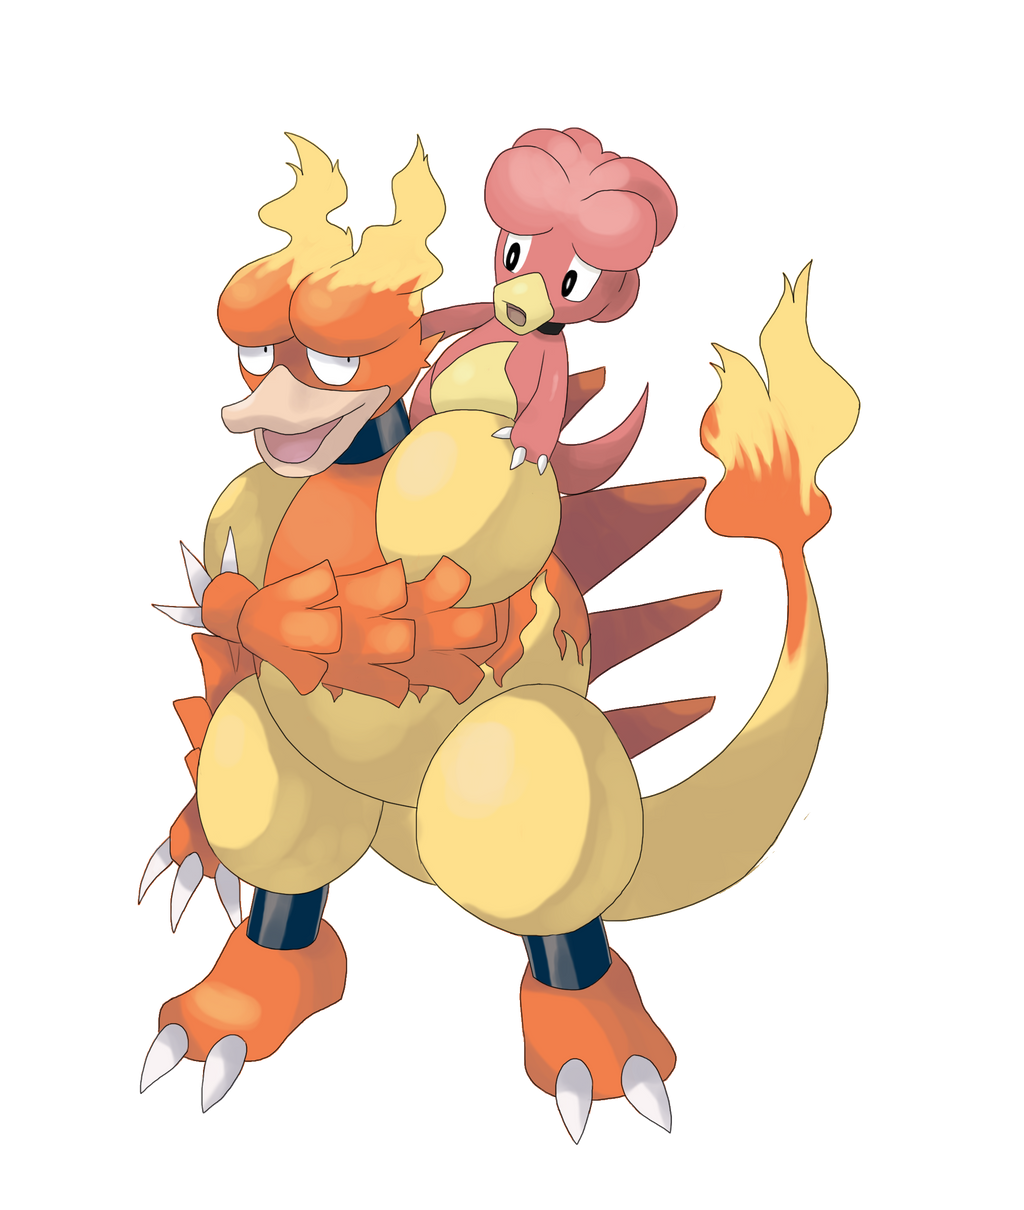 Magmar and Magby by seasonfade on DeviantArt